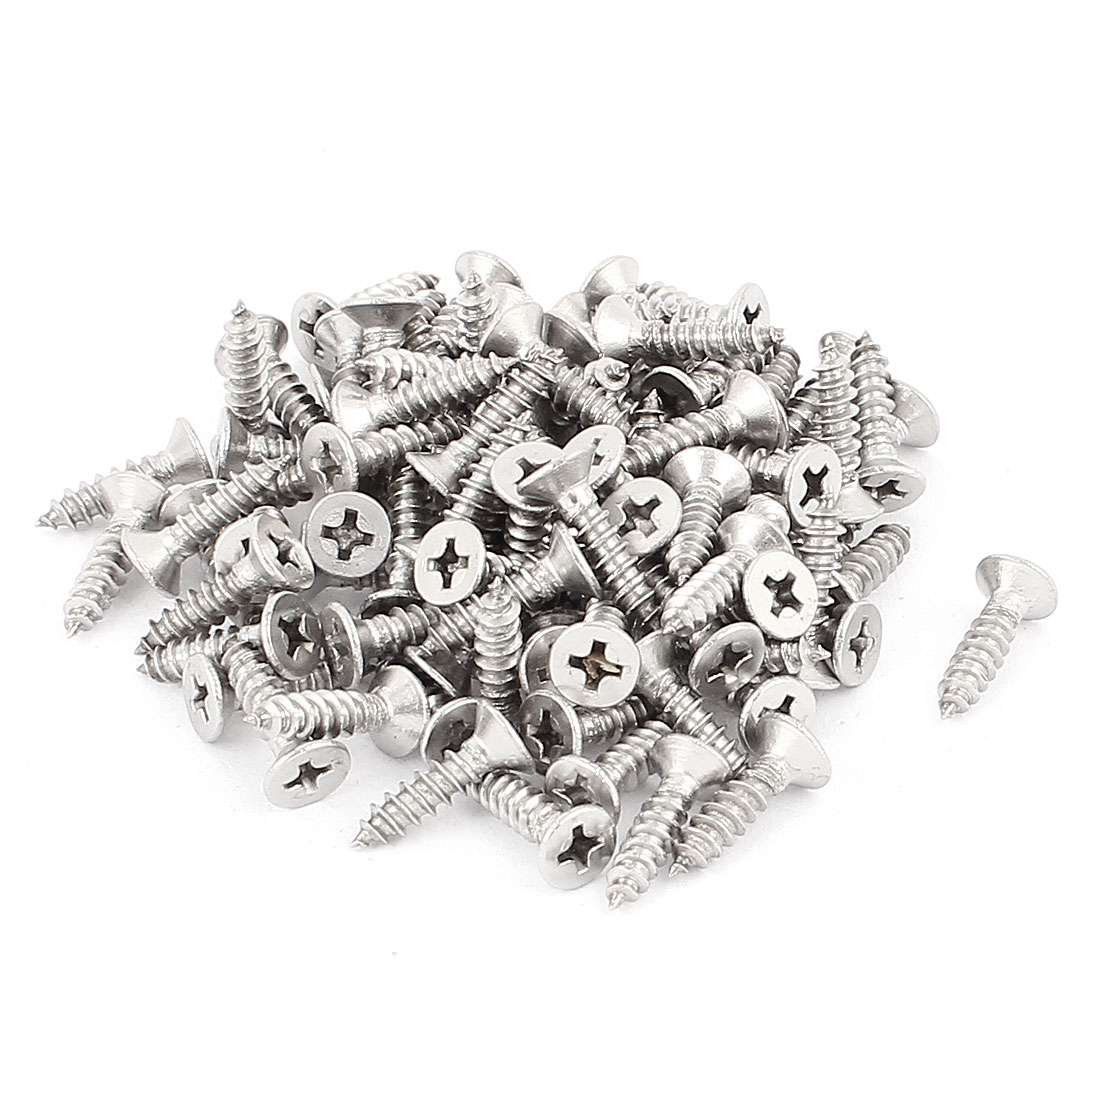 3.9mm x 16mm Countersunk Cross Head Self Tapping Screw Fasteners Silver Tone 100 Pcs